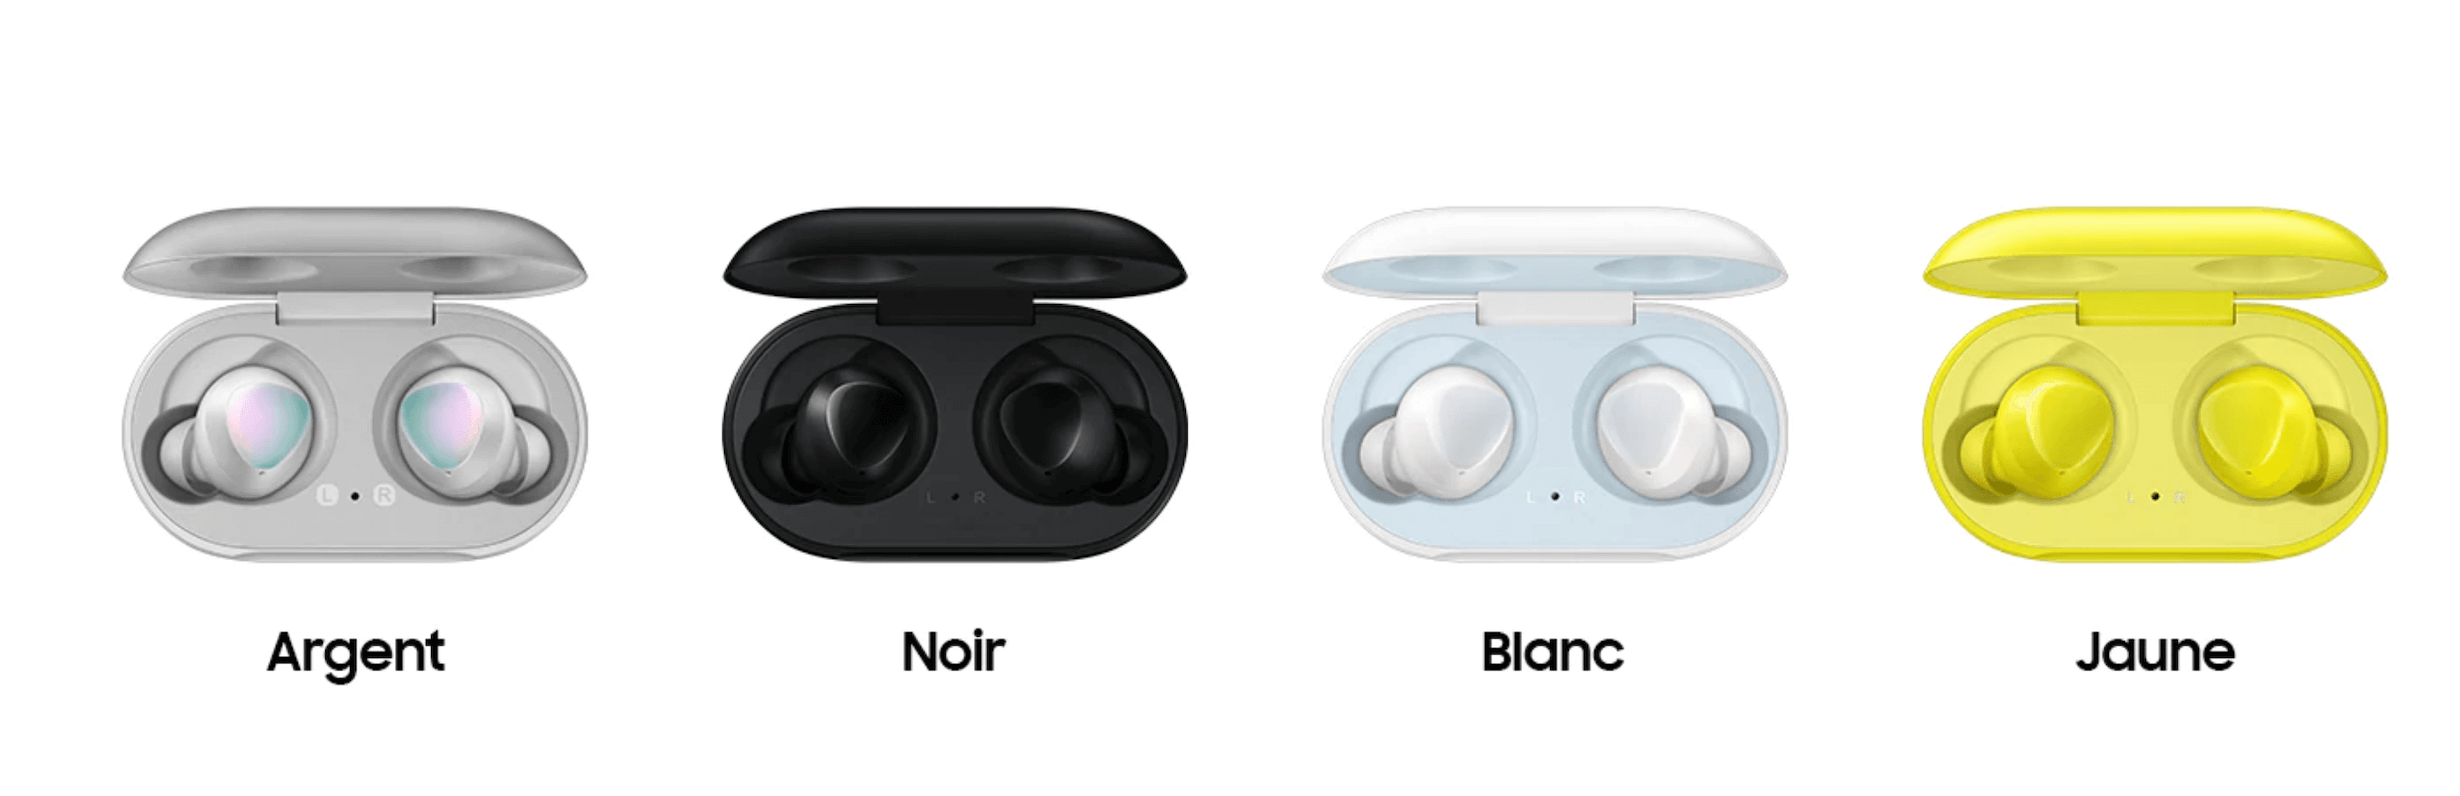 couleurs samsung galaxy buds